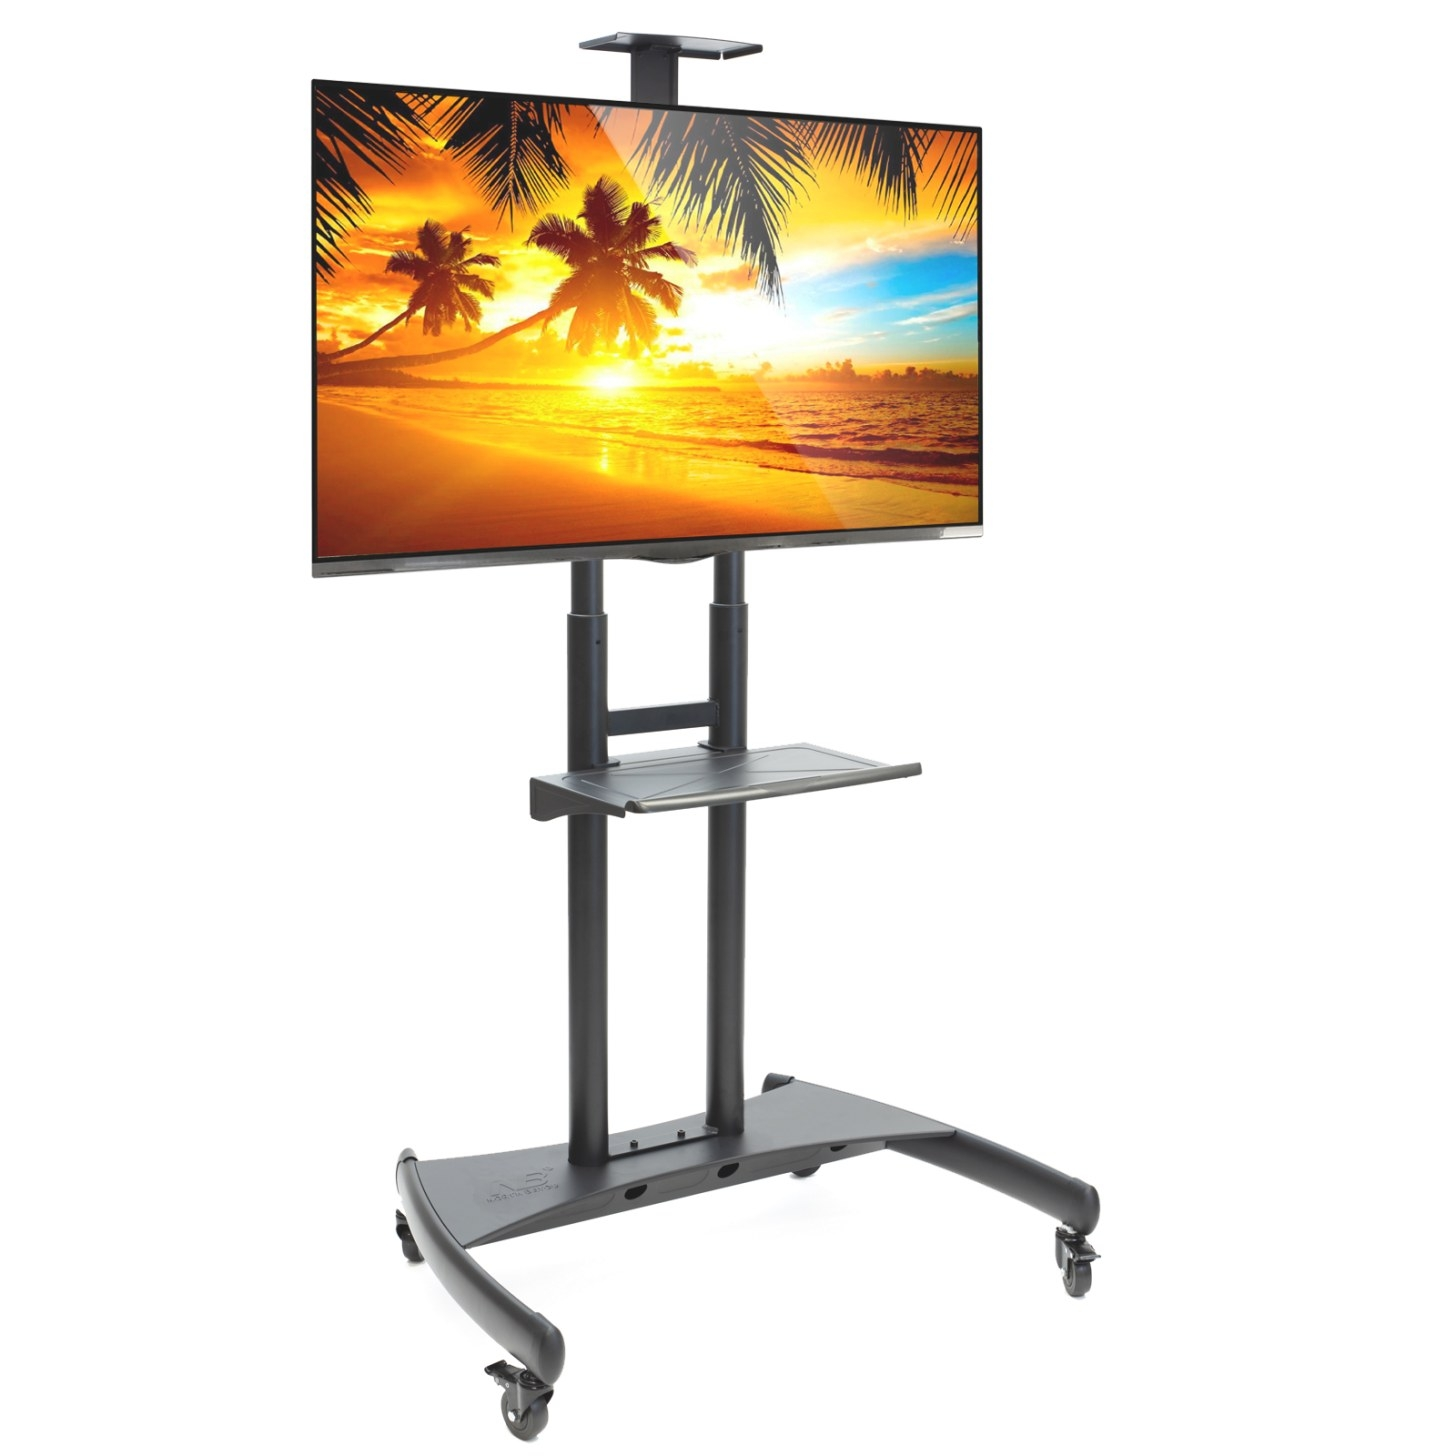 "Rolling Tv Stand Mobile Tv Cart For 55"" - 80"" Plasma pertaining to Tv Stand With Wheels"